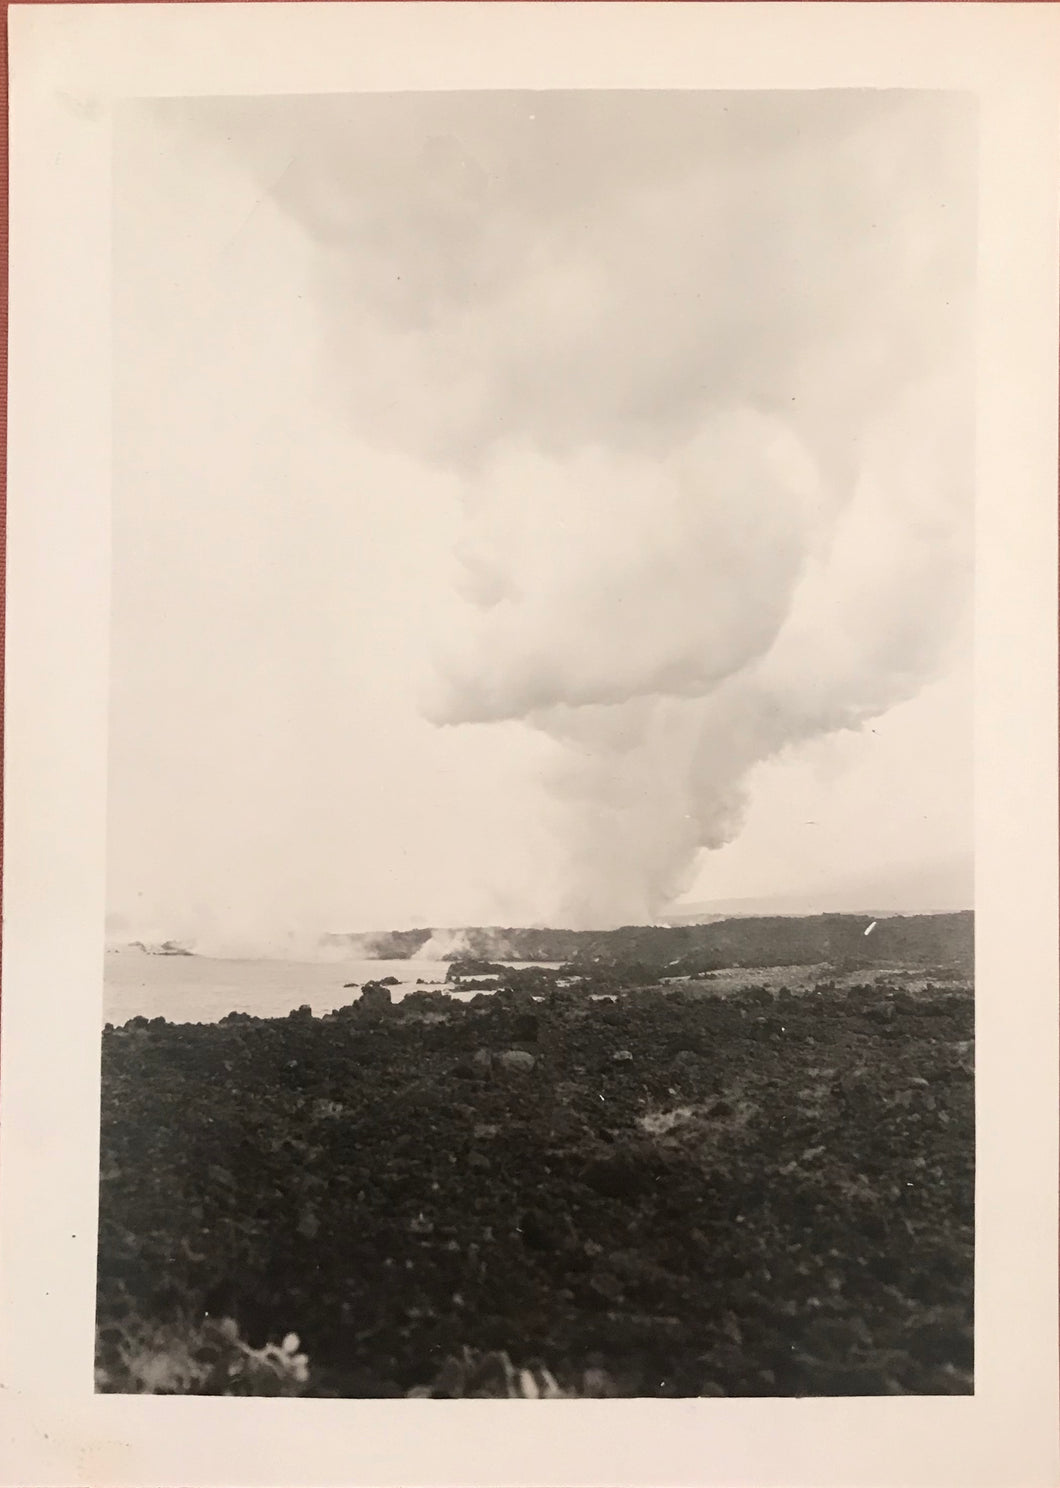 1923 Vintage Photograph of Kilauea Hawaii